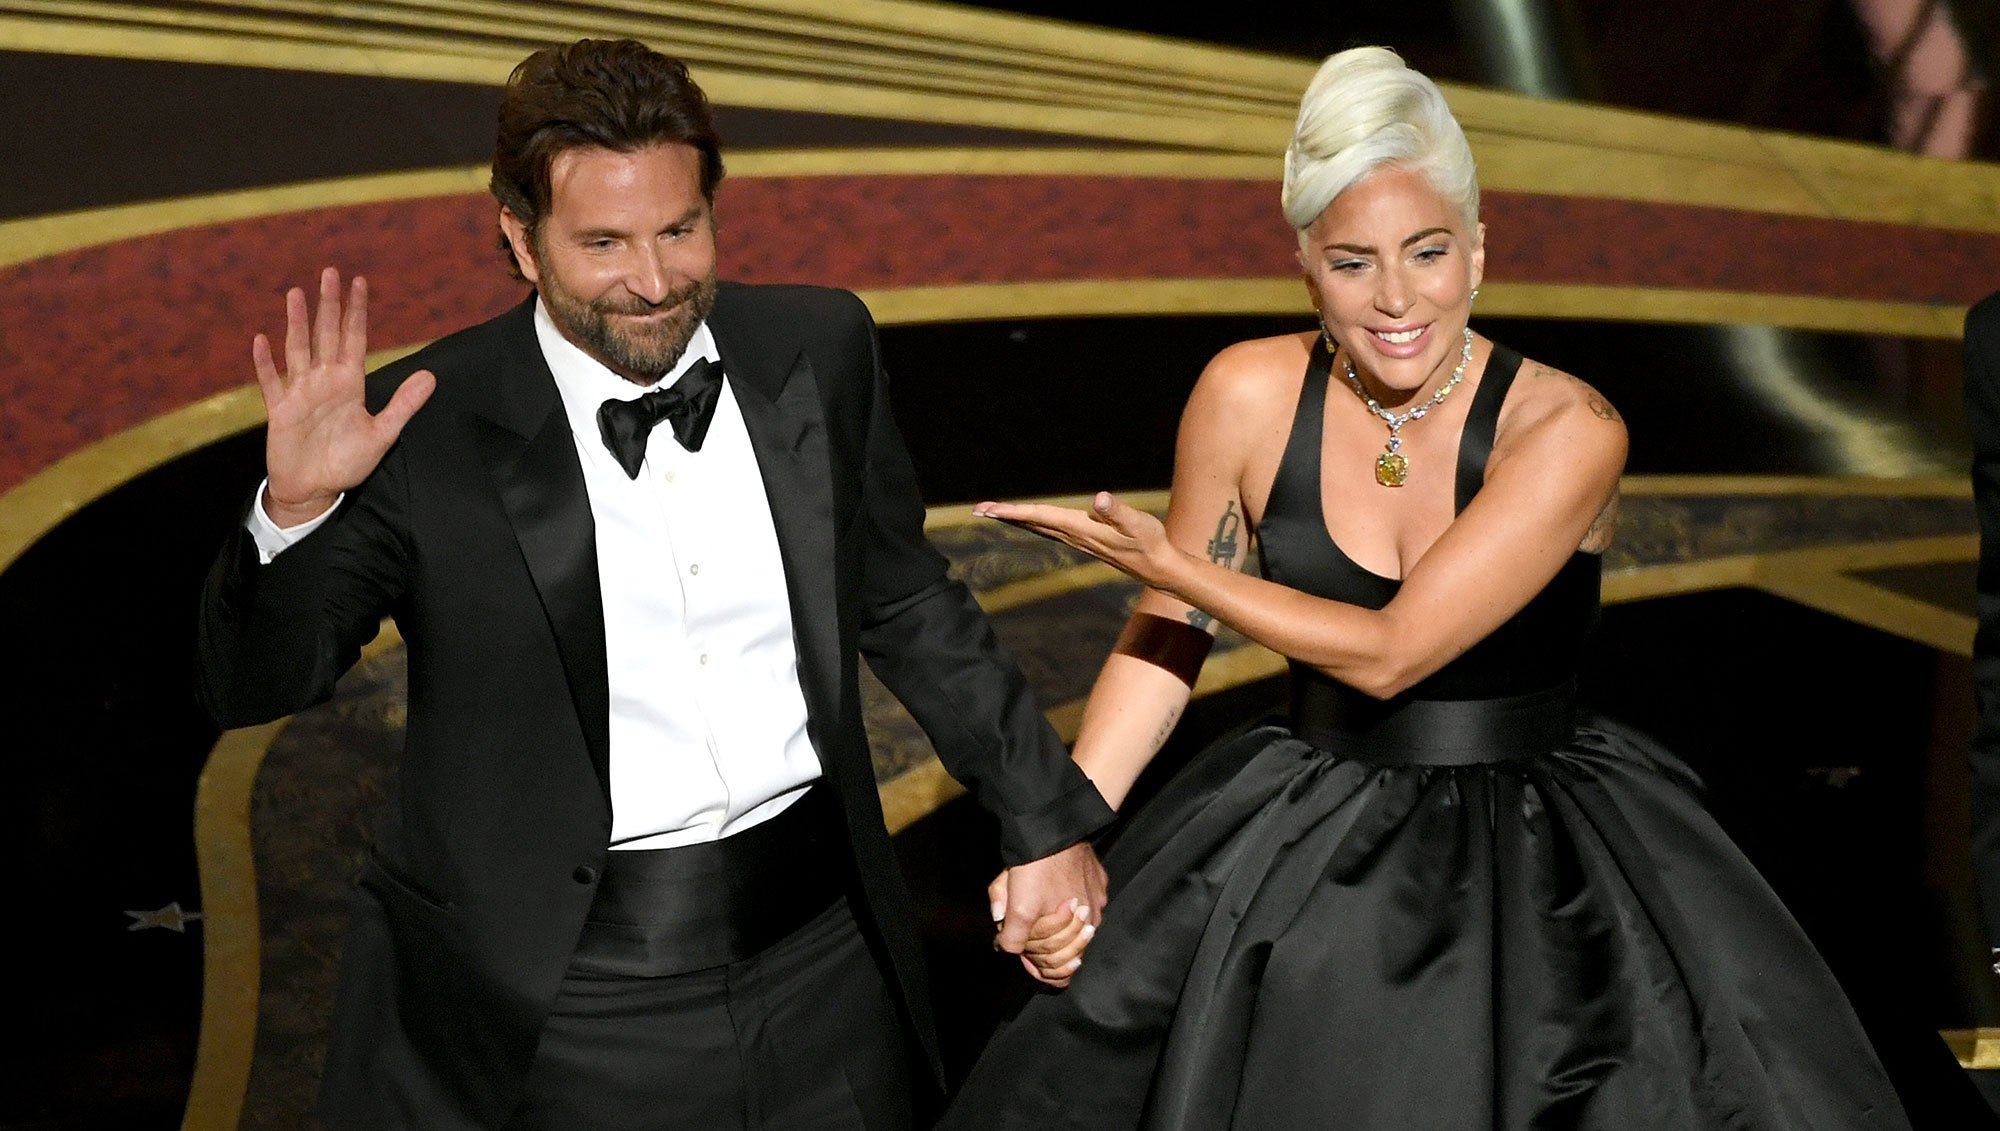 oscars 2019 Bradley Cooper and Lady Gaga Best Duo, Top Moments and More! Us Weekly Breaks Down the 2019 Oscars